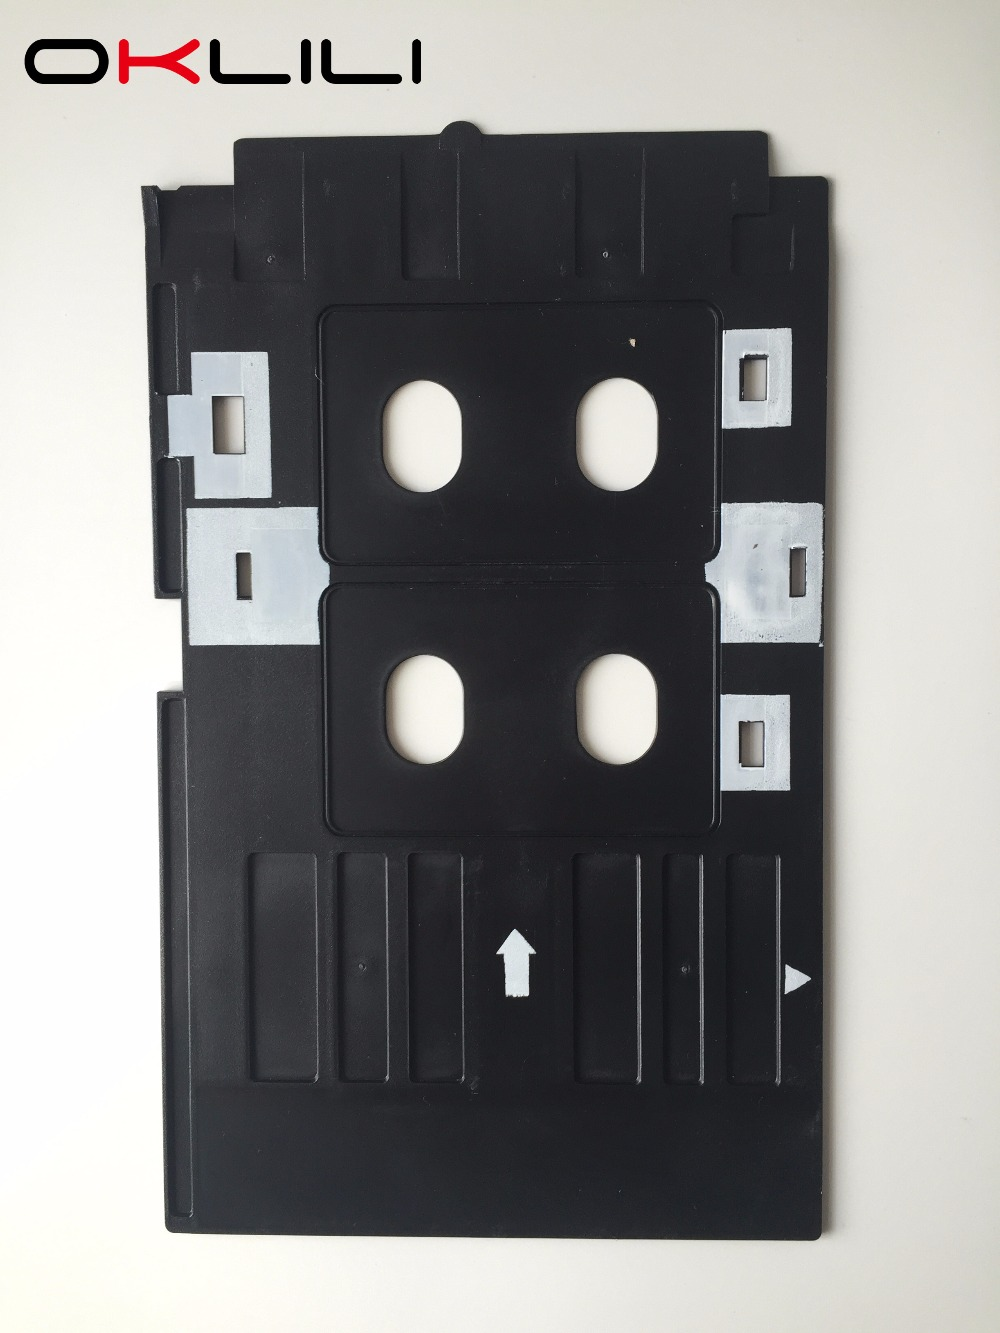 PVC ID Card Tray Plastic card Printing Tray for Epson R260 R265 R270 R280 R290 R380 R390 RX680 T50 T60 A50 P50 L800 L801 R330 safe device anti sleep drowsy alarm alert sleepy reminder for car driver to keep awake